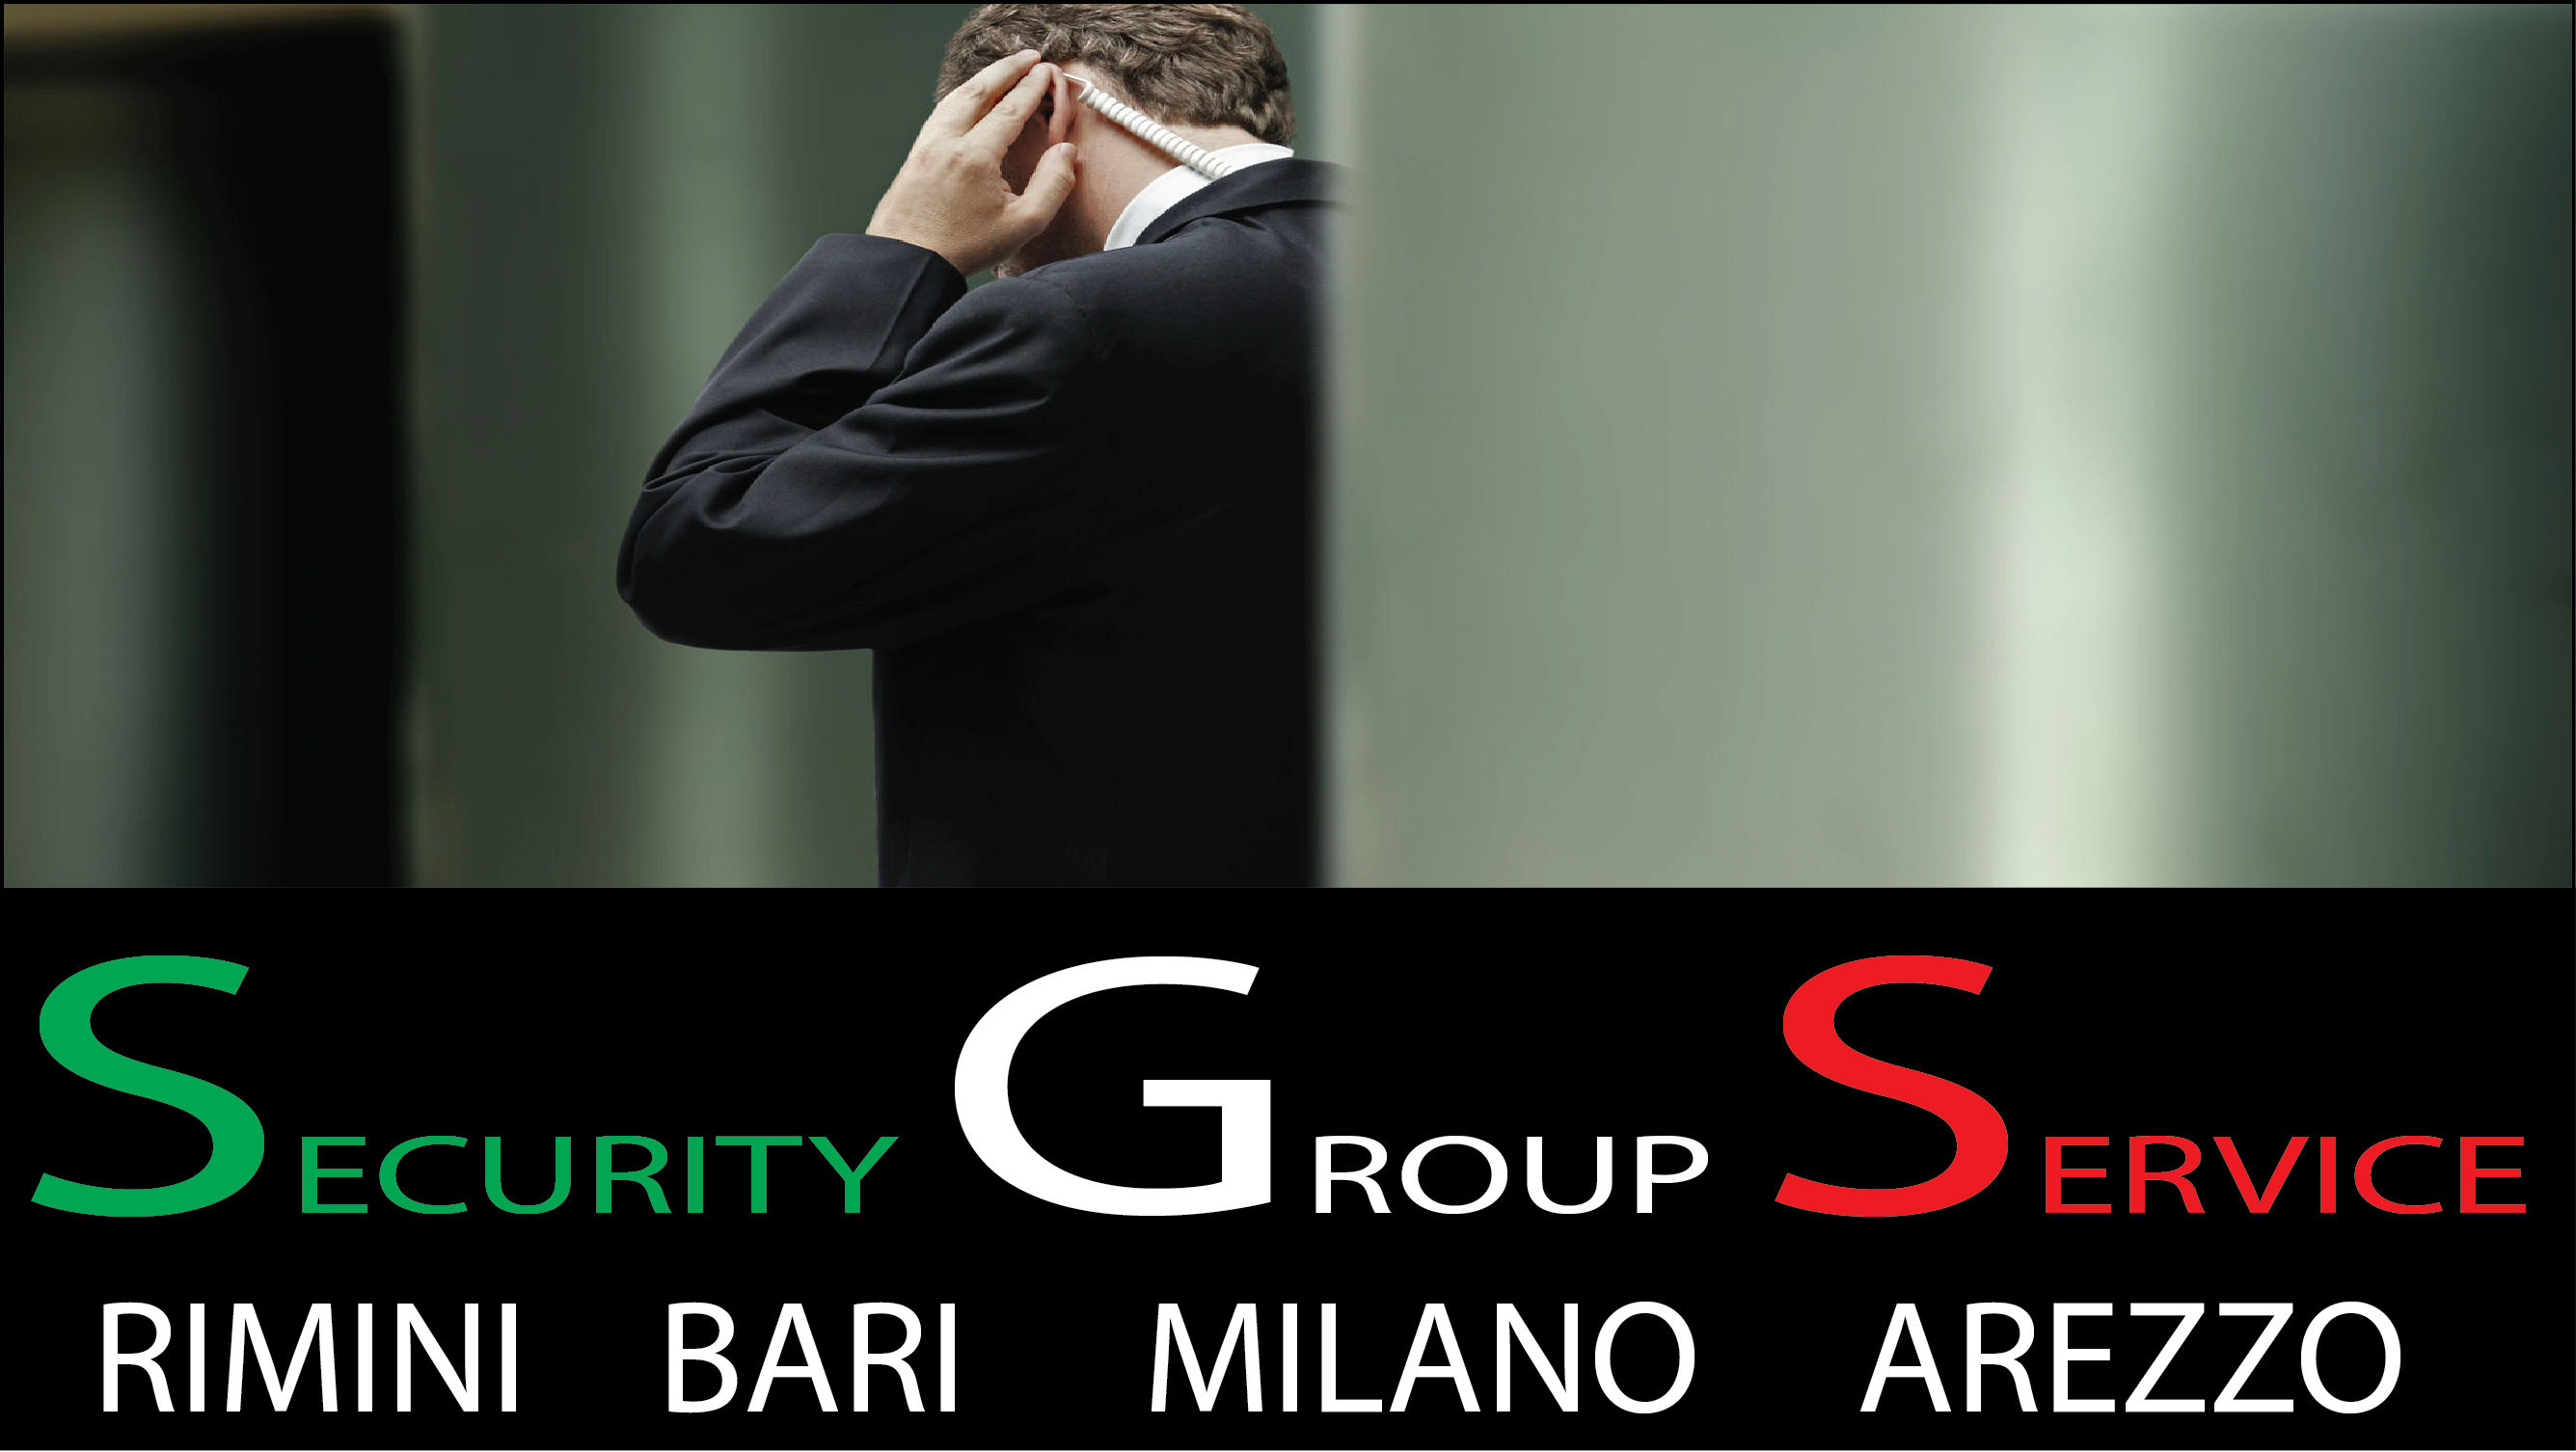 S.G.S. Security Group Service